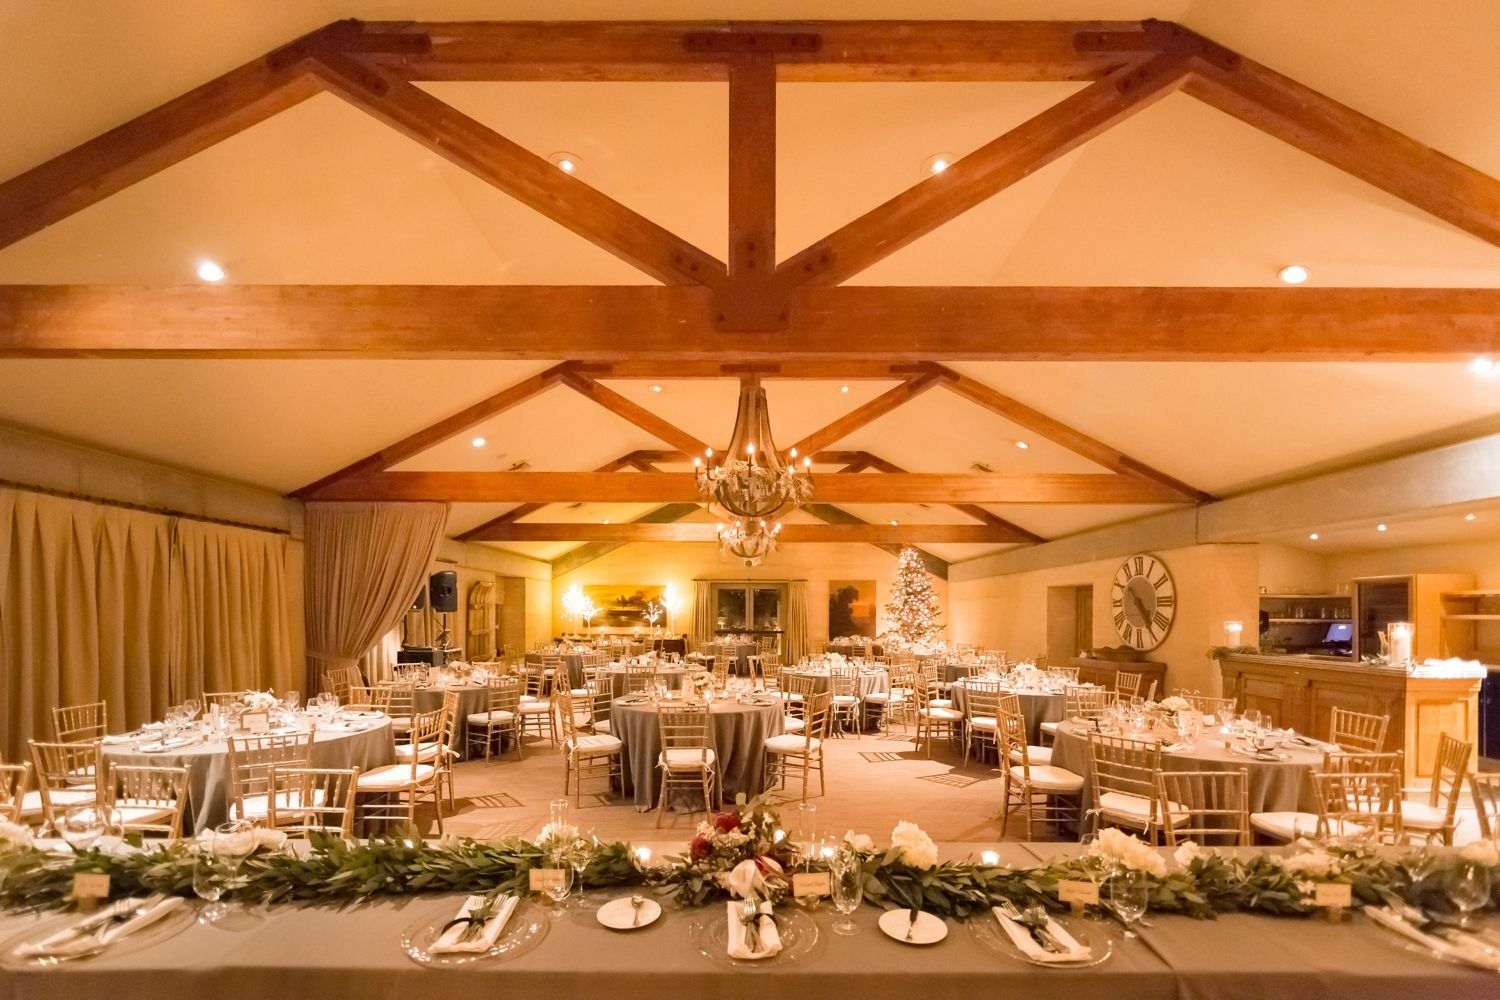 Rustic French Great Room At Ramekins In Sonoma The Perfect Wedding Spot Inspiration Pinterest And Weddings